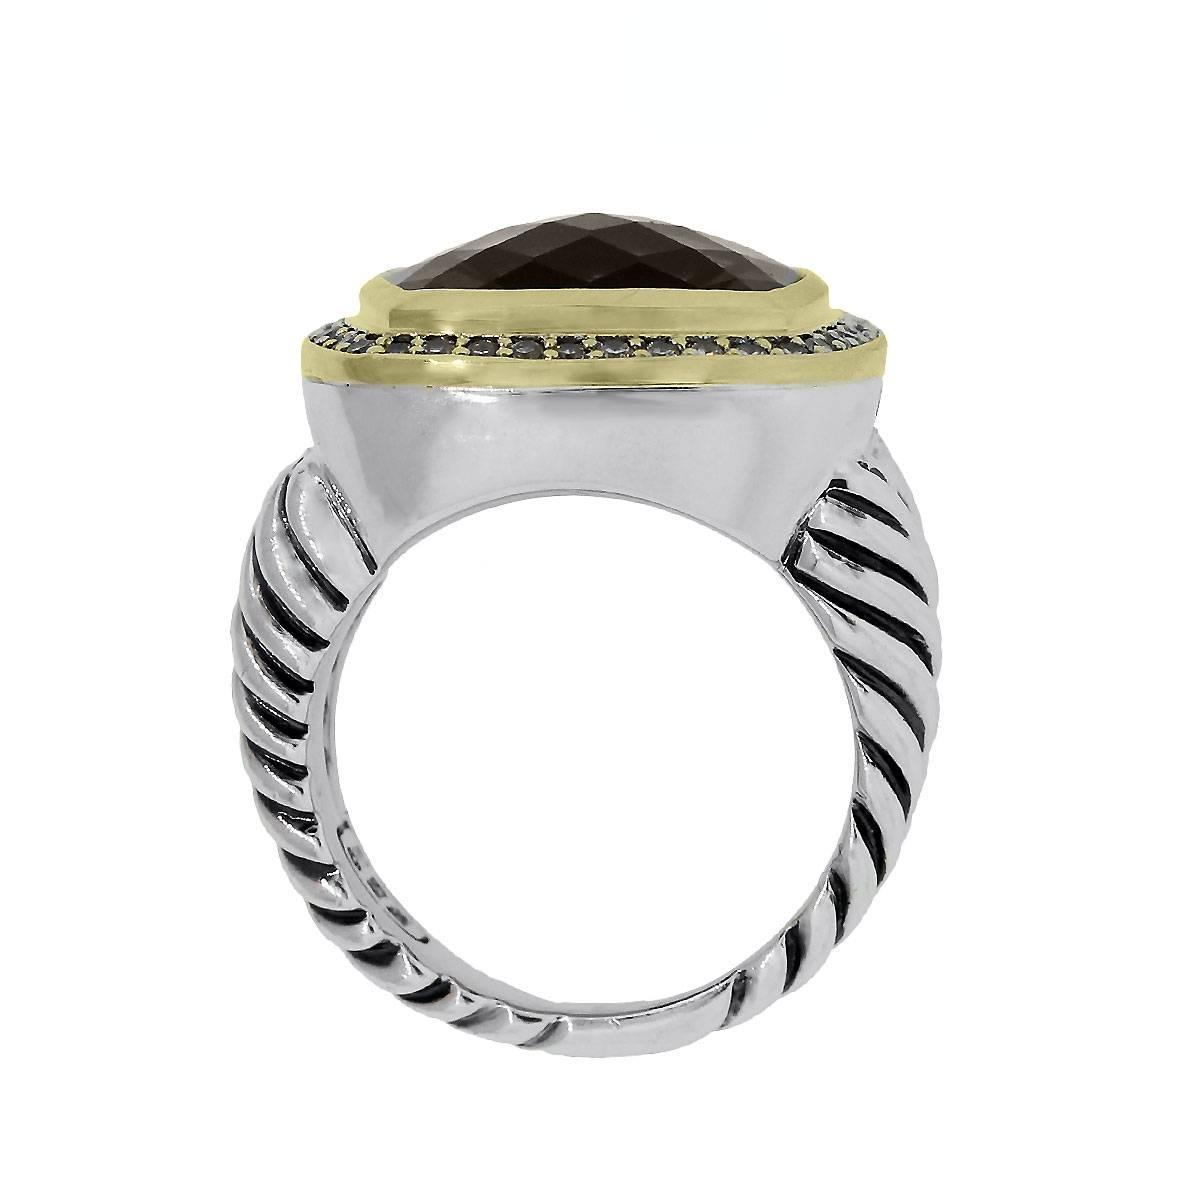 silvergold and yurman lyst silver rings with jewelry labyrinth normal diamonds david dome ring in gold product gallery